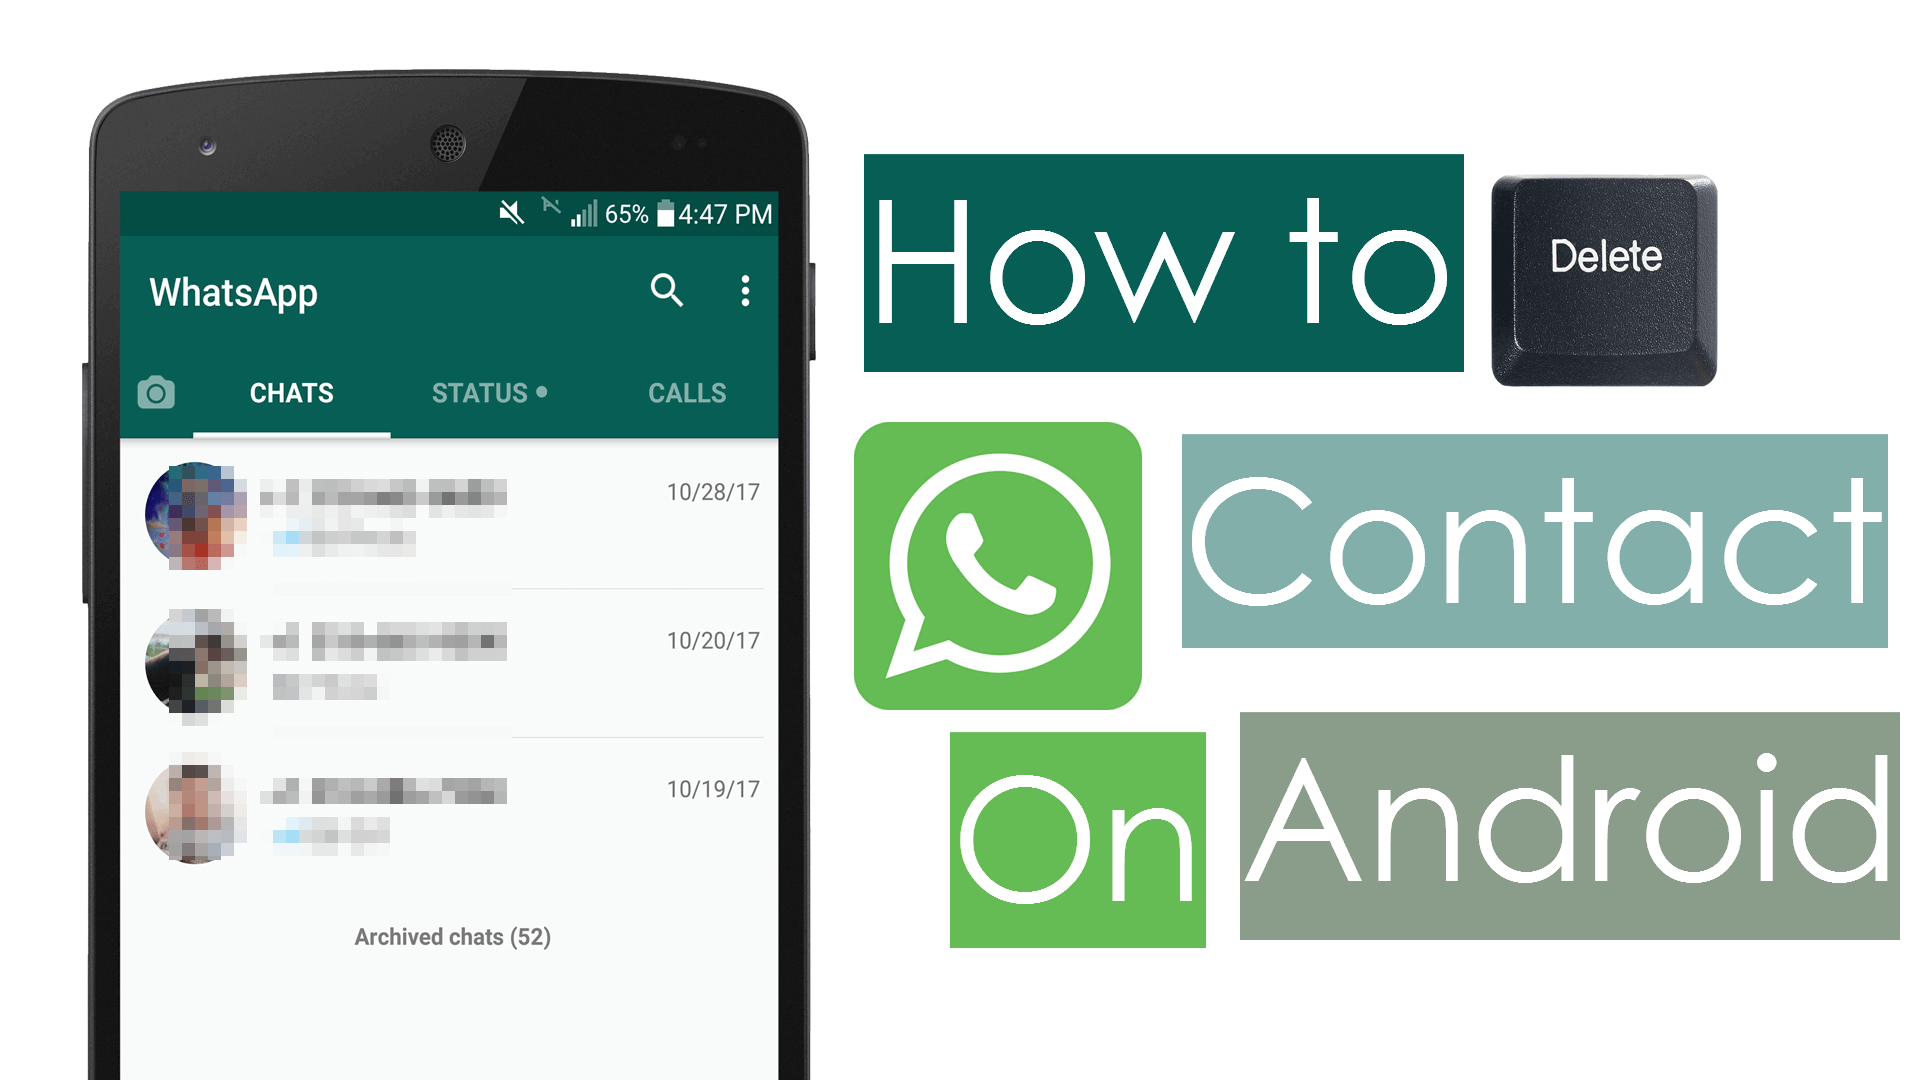 Delete whatsapp contact on android